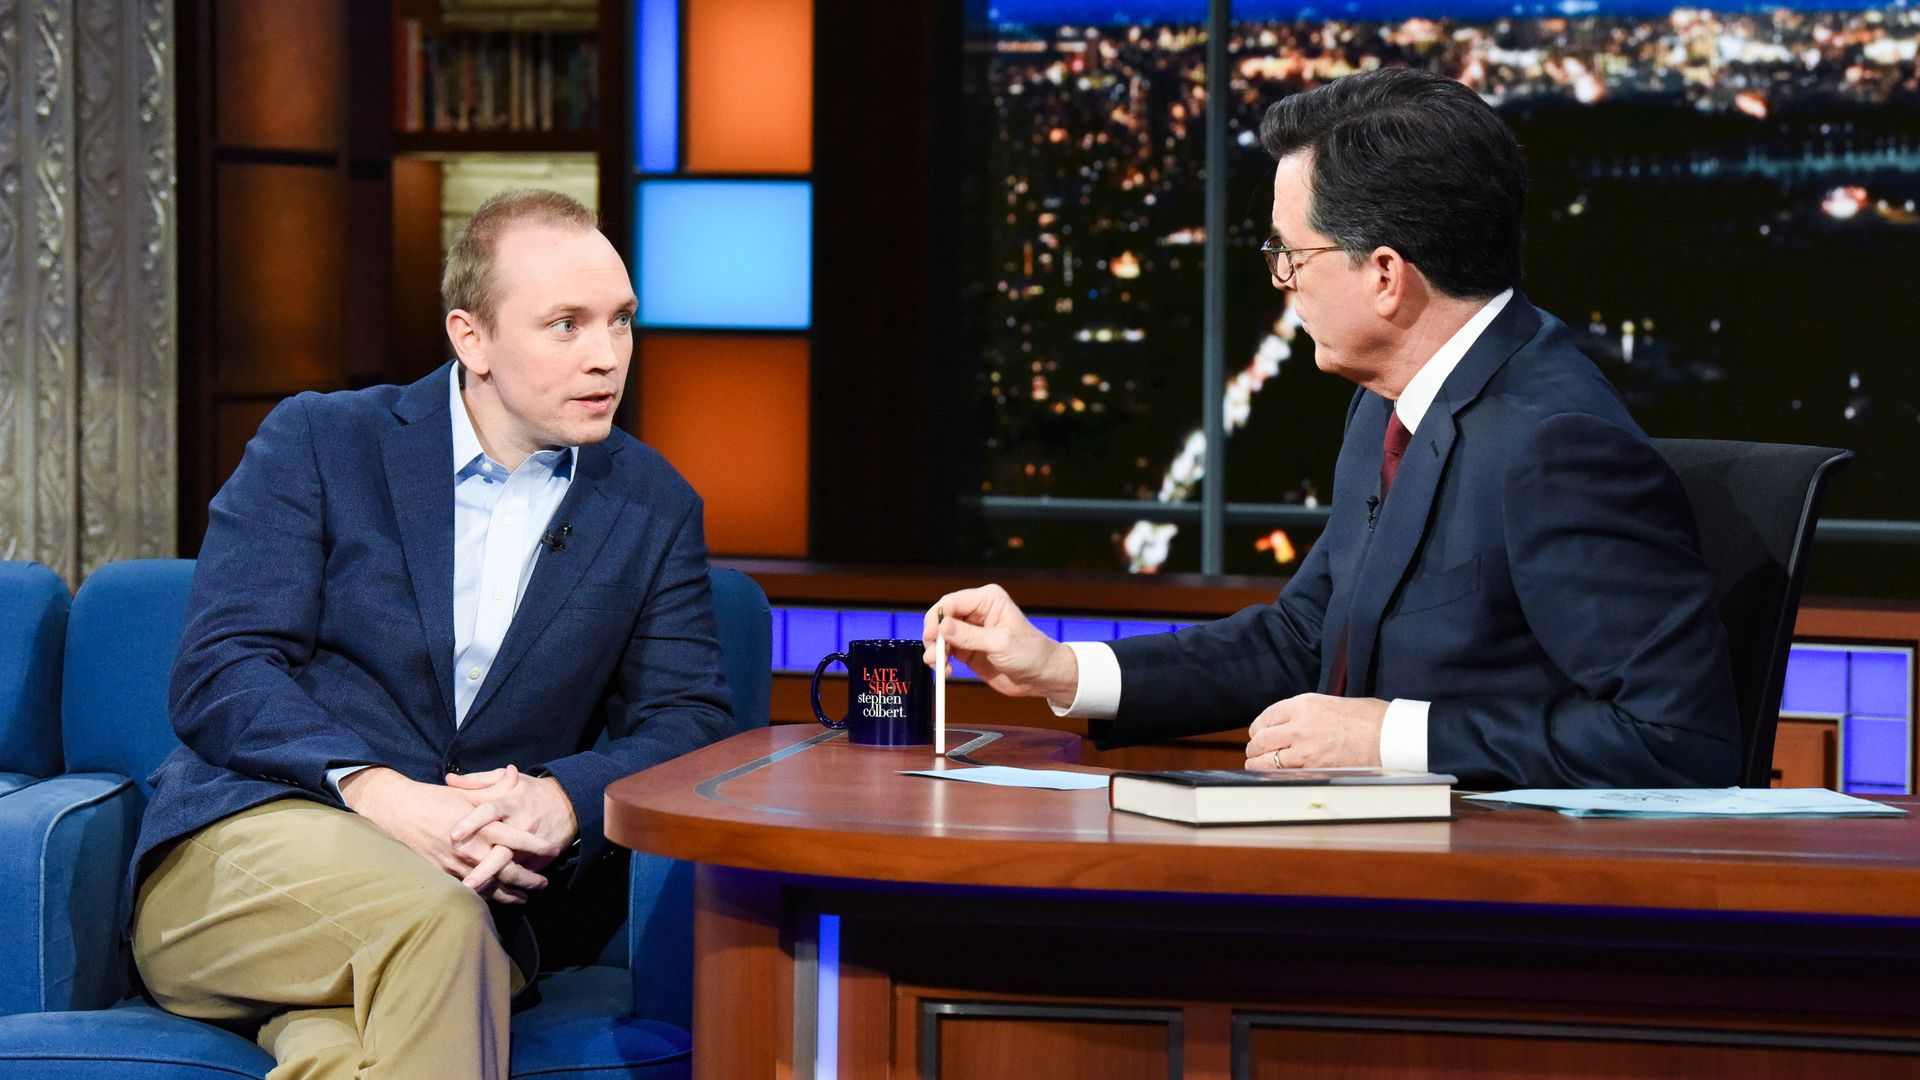 Former White House communications aide Cliff Sims on The Late Show with Stephen Colbert.